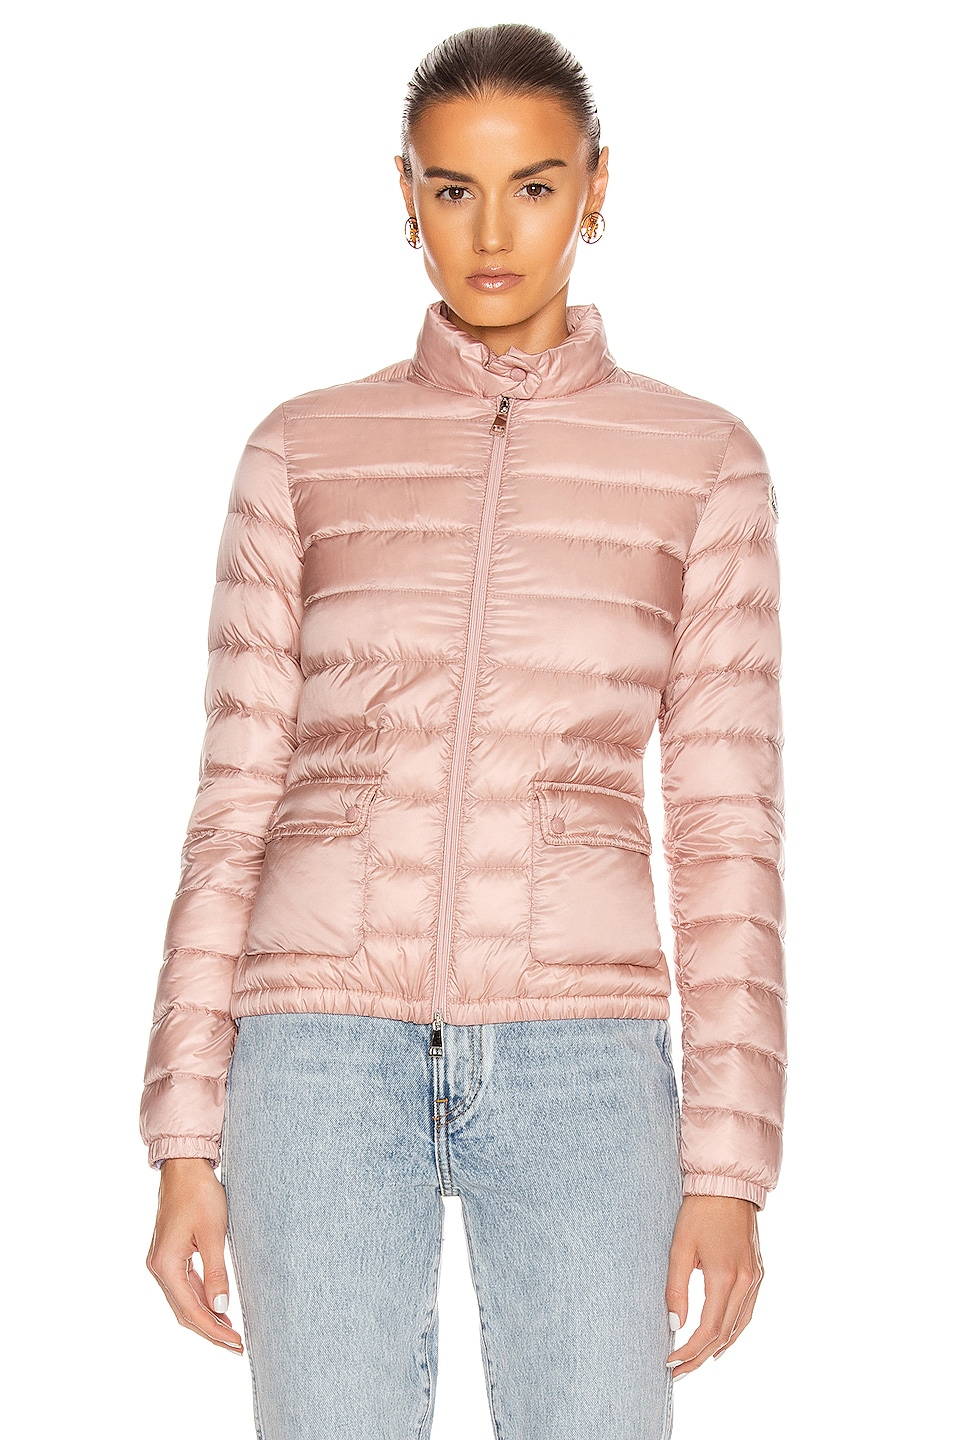 Image 2 of Moncler Lans Giubbotto Jacket in Blush